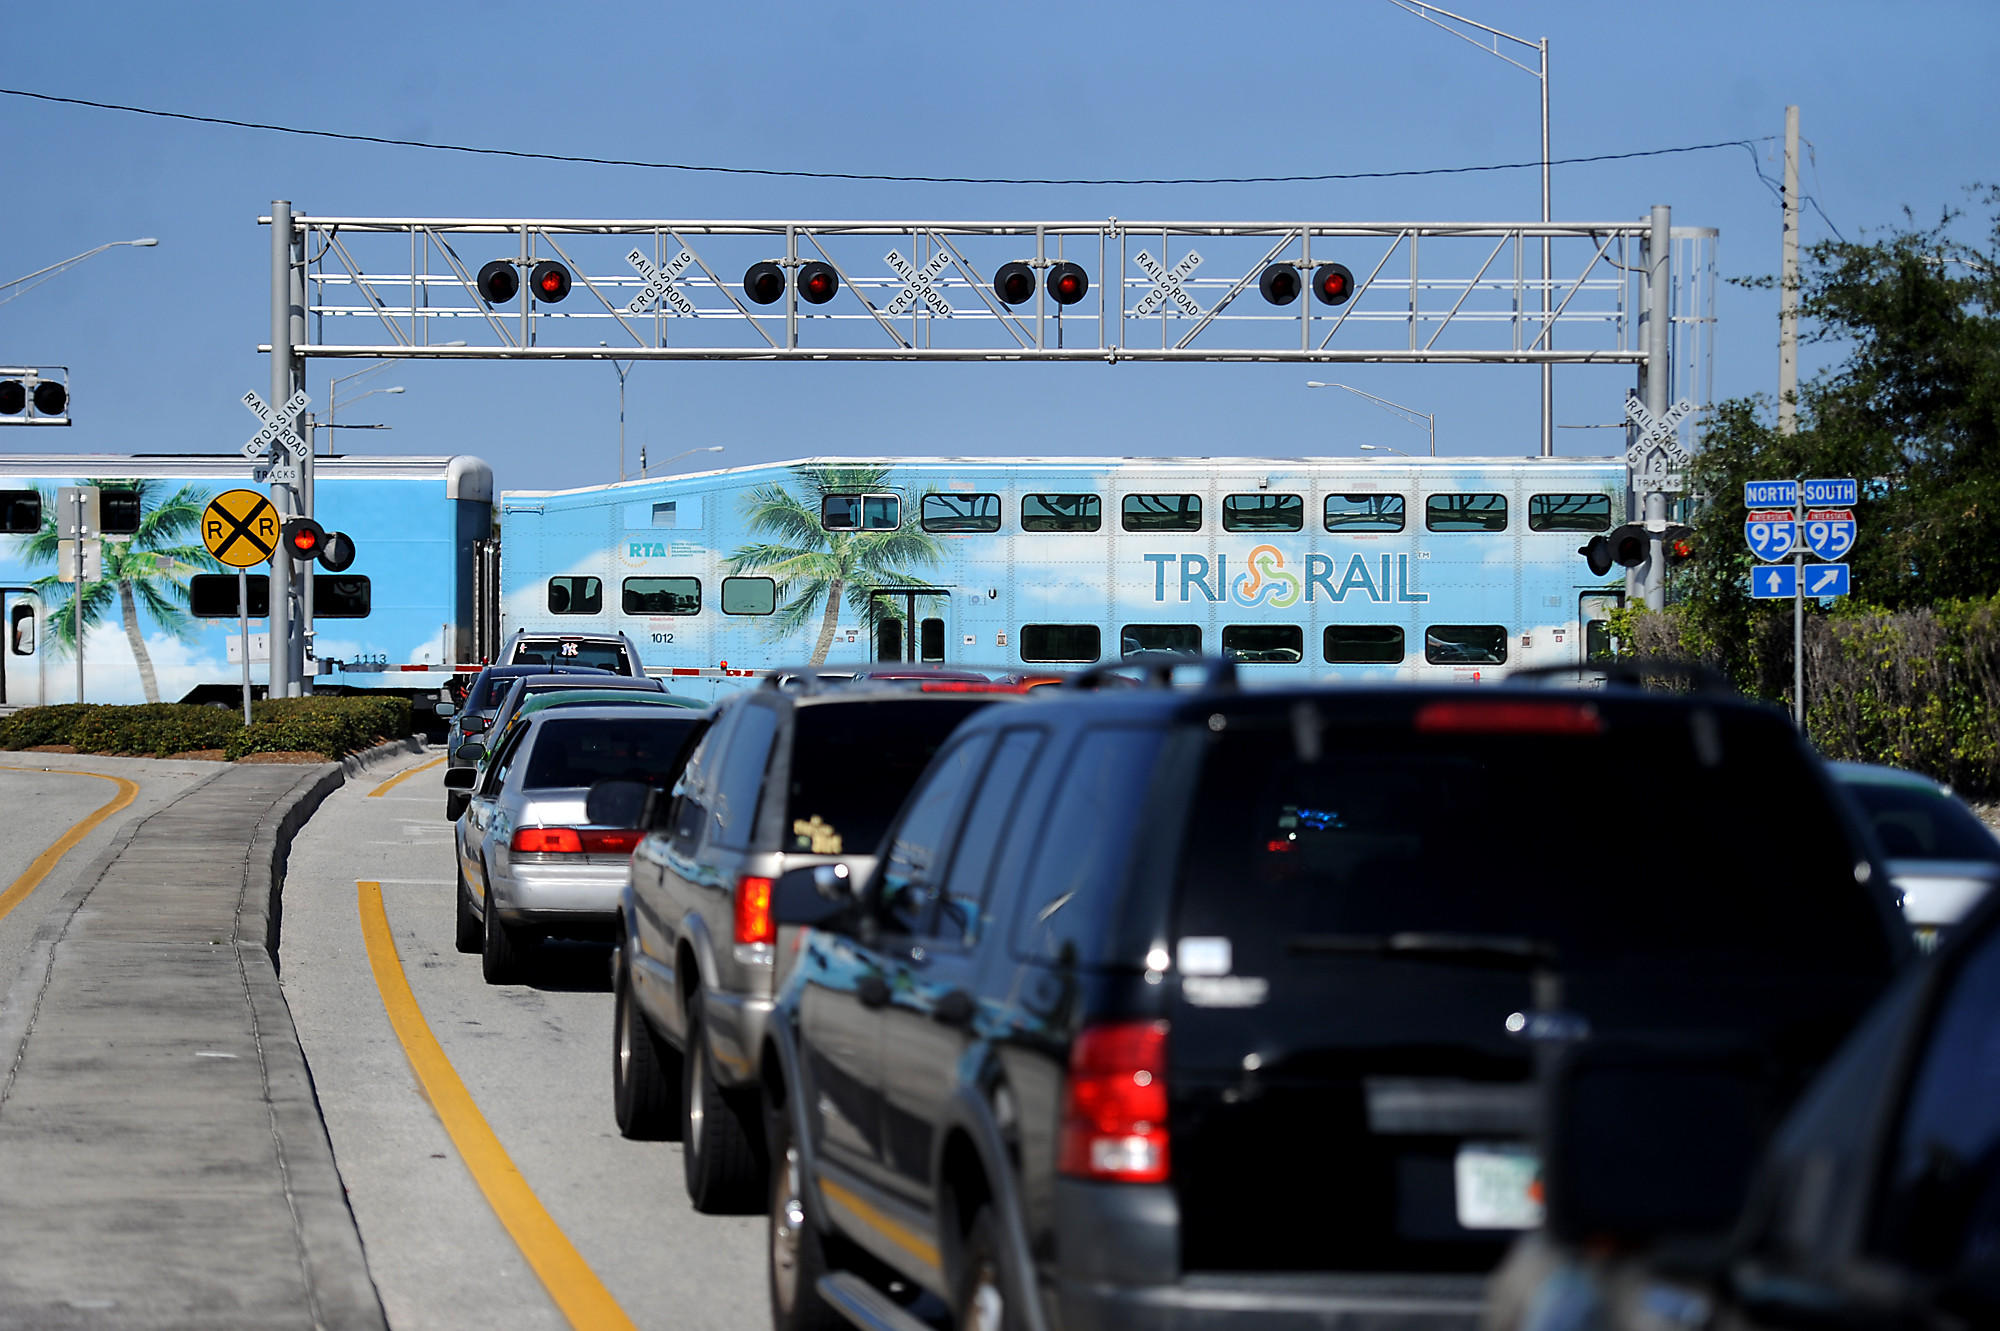 Second Tri-Rail Station Coming to Boca Raton?